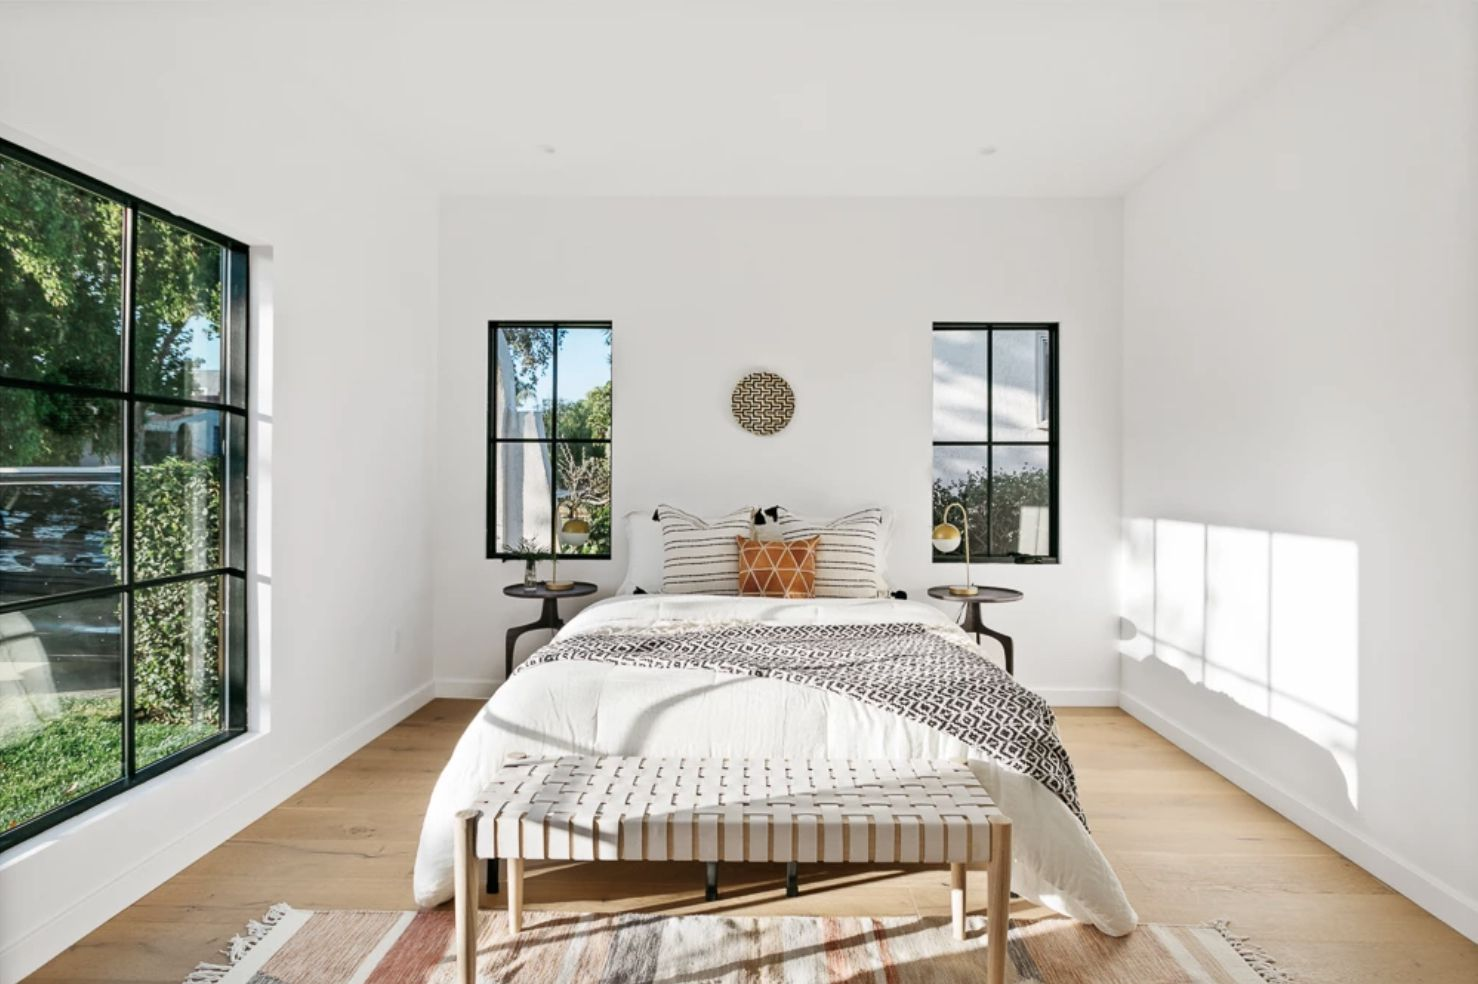 Spanish modern with white walls, windows without curtains. mediterranean vibes